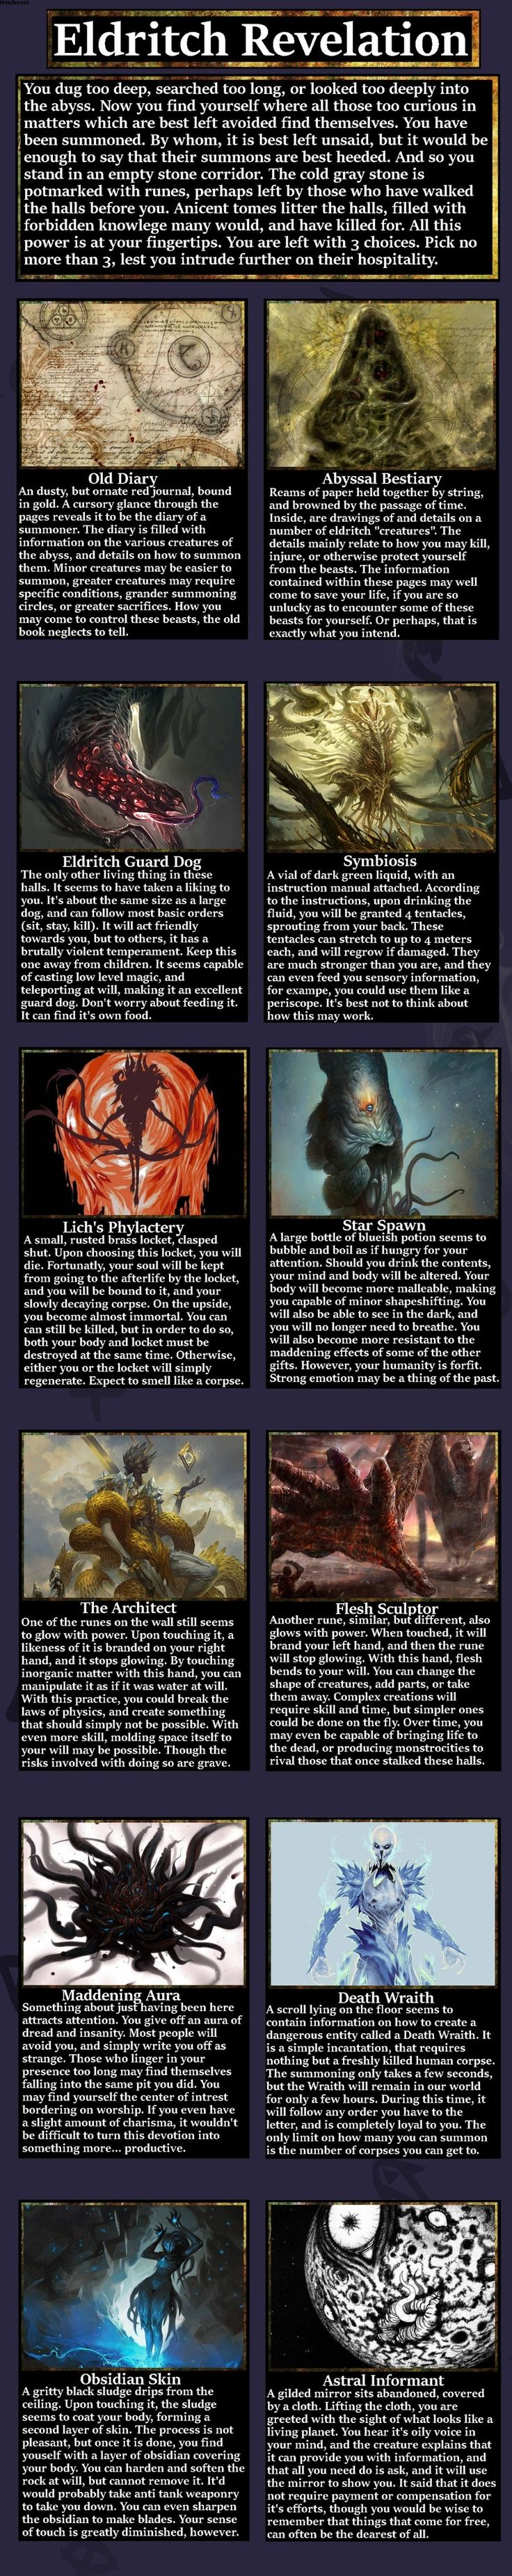 I think I'd pick The Architect, The Astral Informant, and the Abyssal Bestiary.